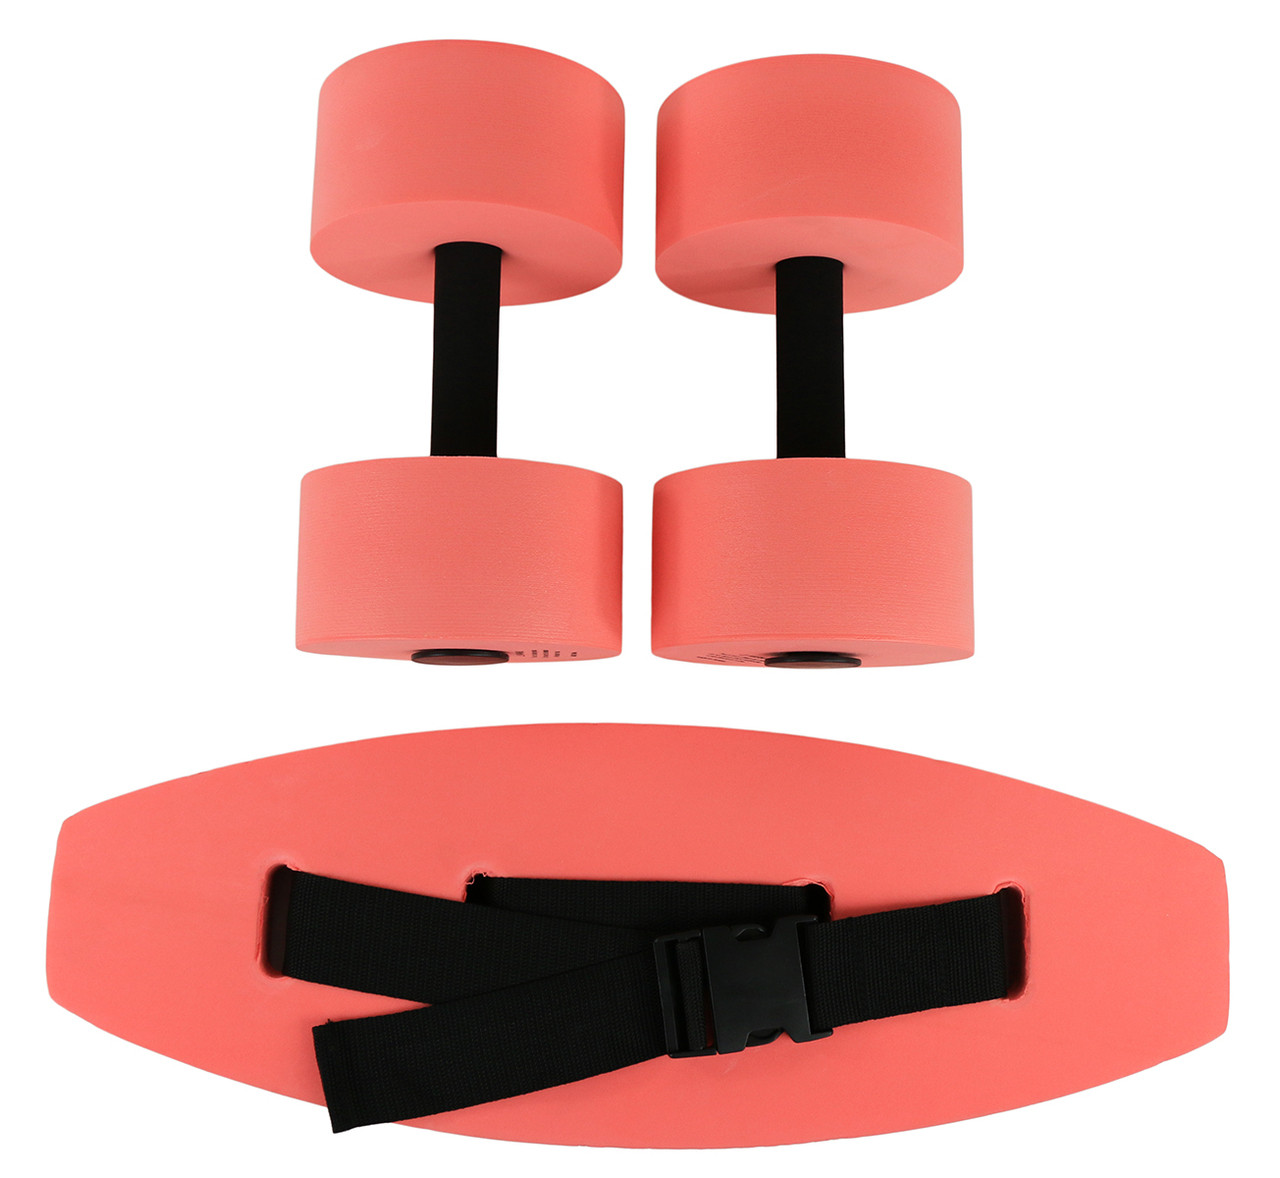 CanDo¨ aquatic exercise kit, (jogger belt, hand bars) small, red